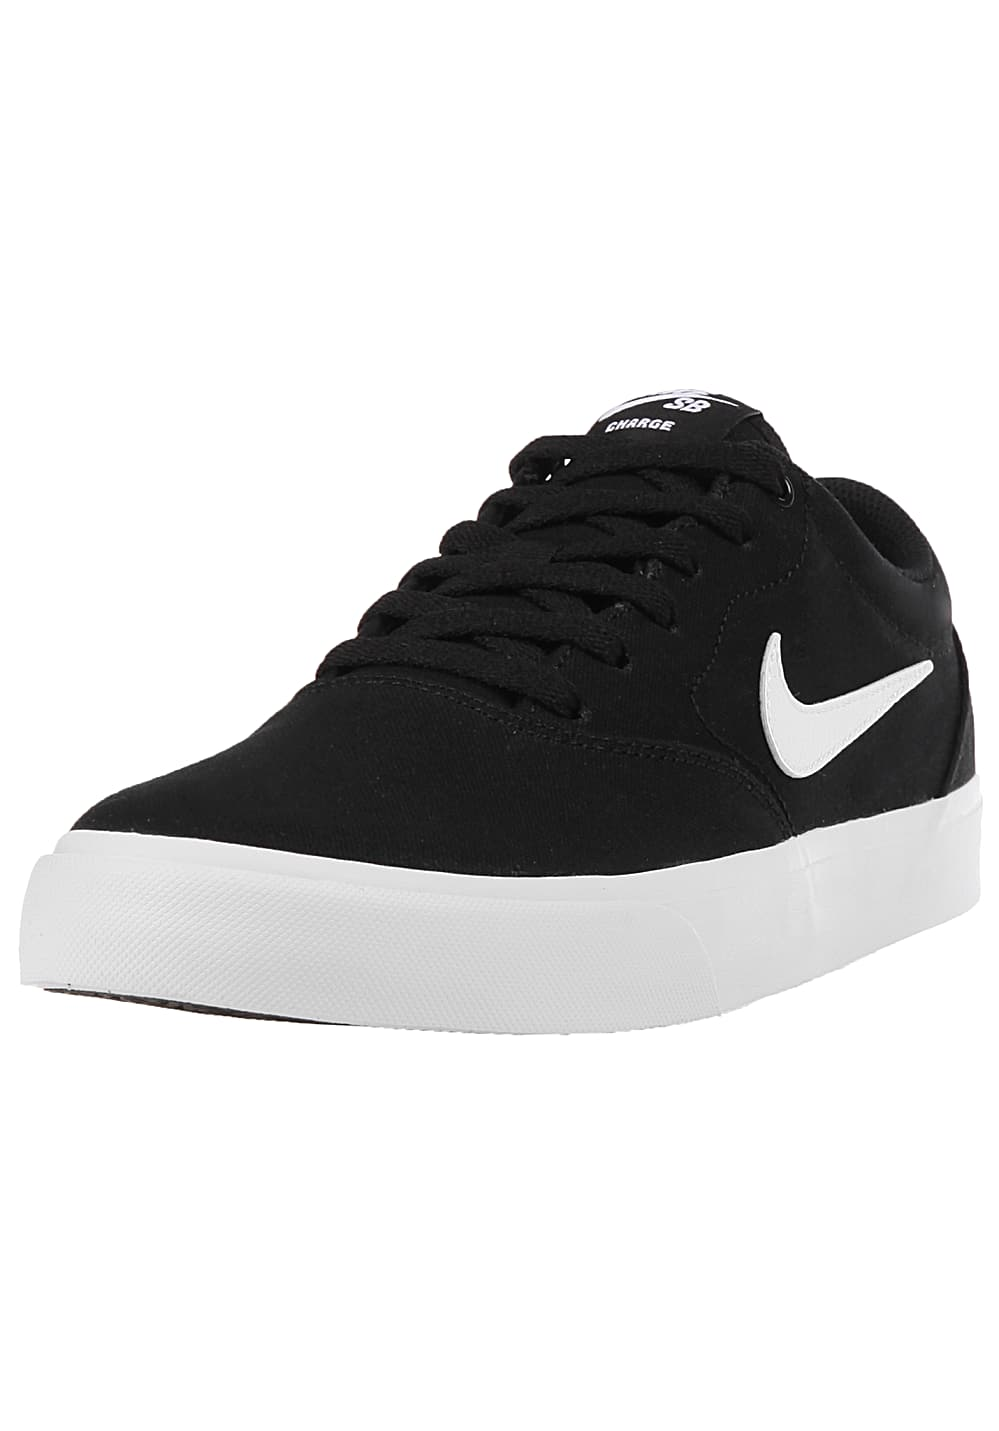 new product b6105 5176f Next. NIKE SB. Charge Cnvs - Baskets pour Homme